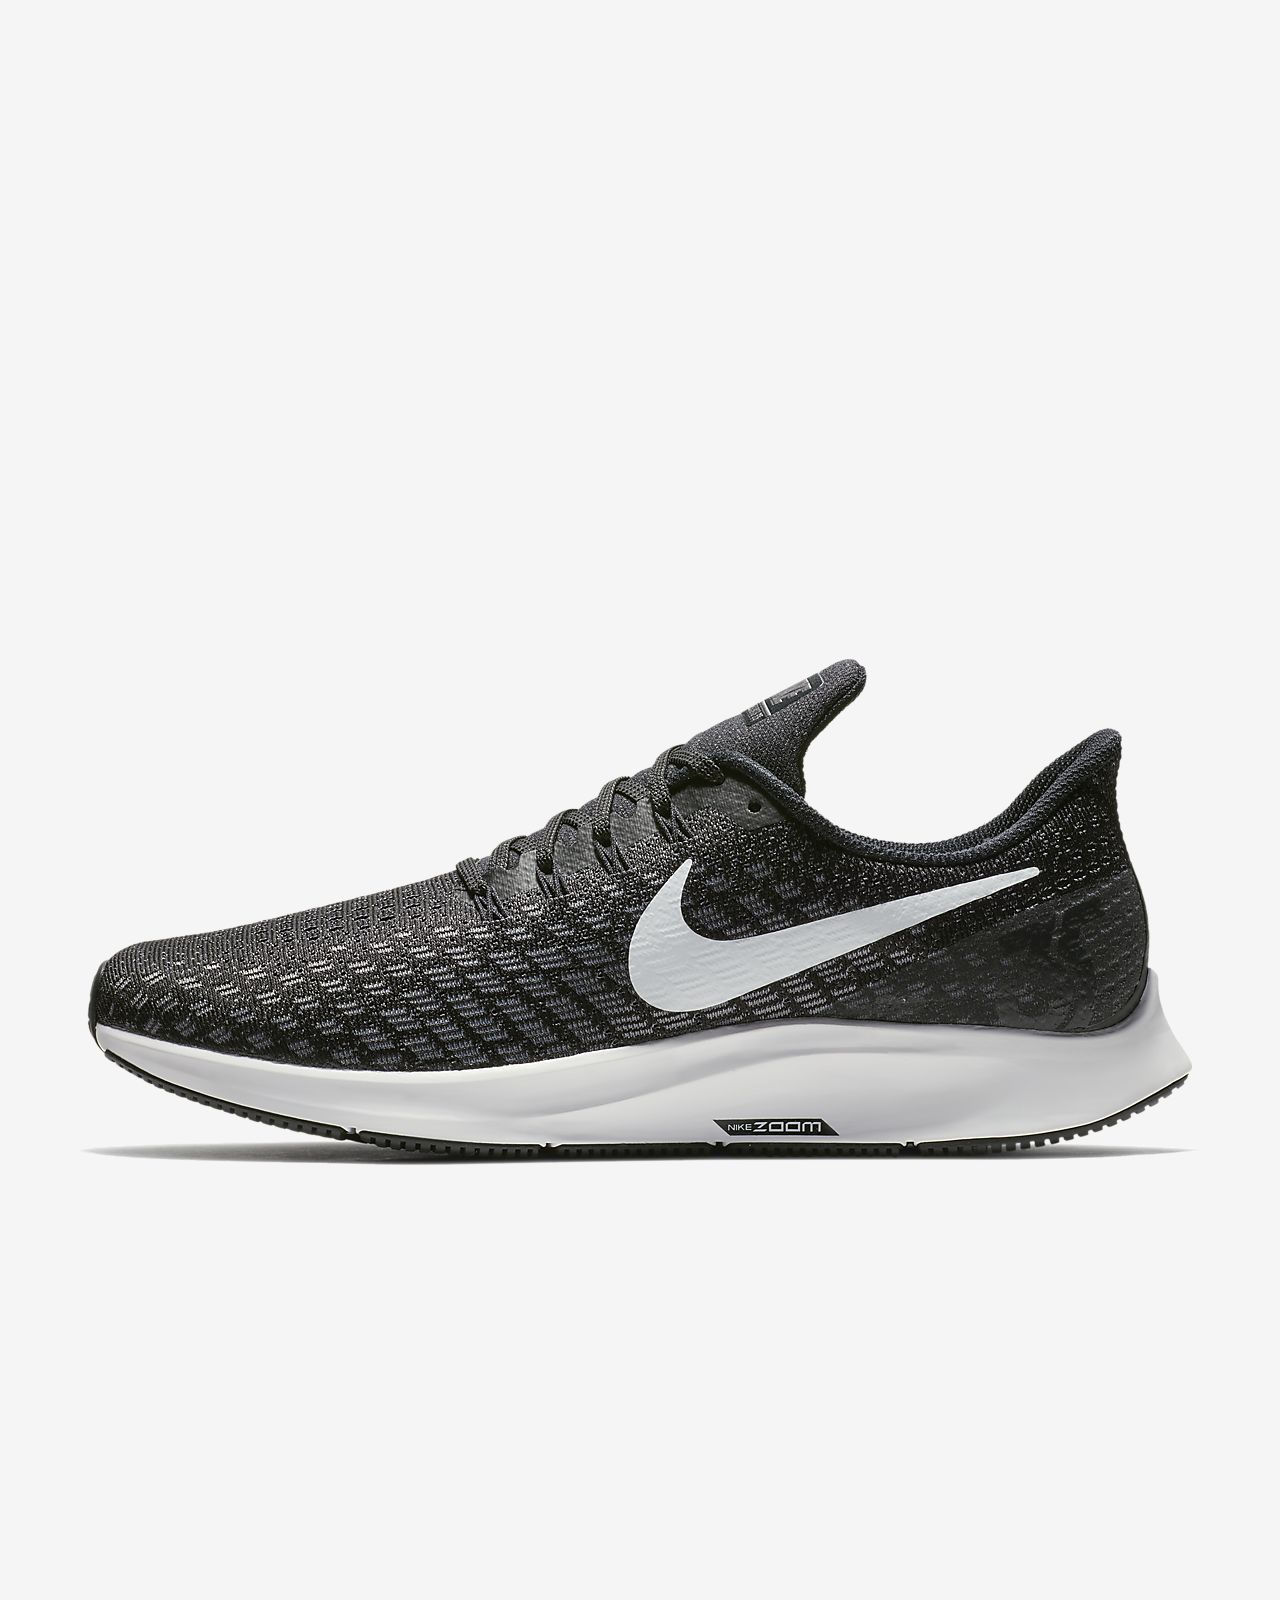 56e7dcea25059 Nike Air Zoom Pegasus 35 Men s Running Shoe. Nike.com NL